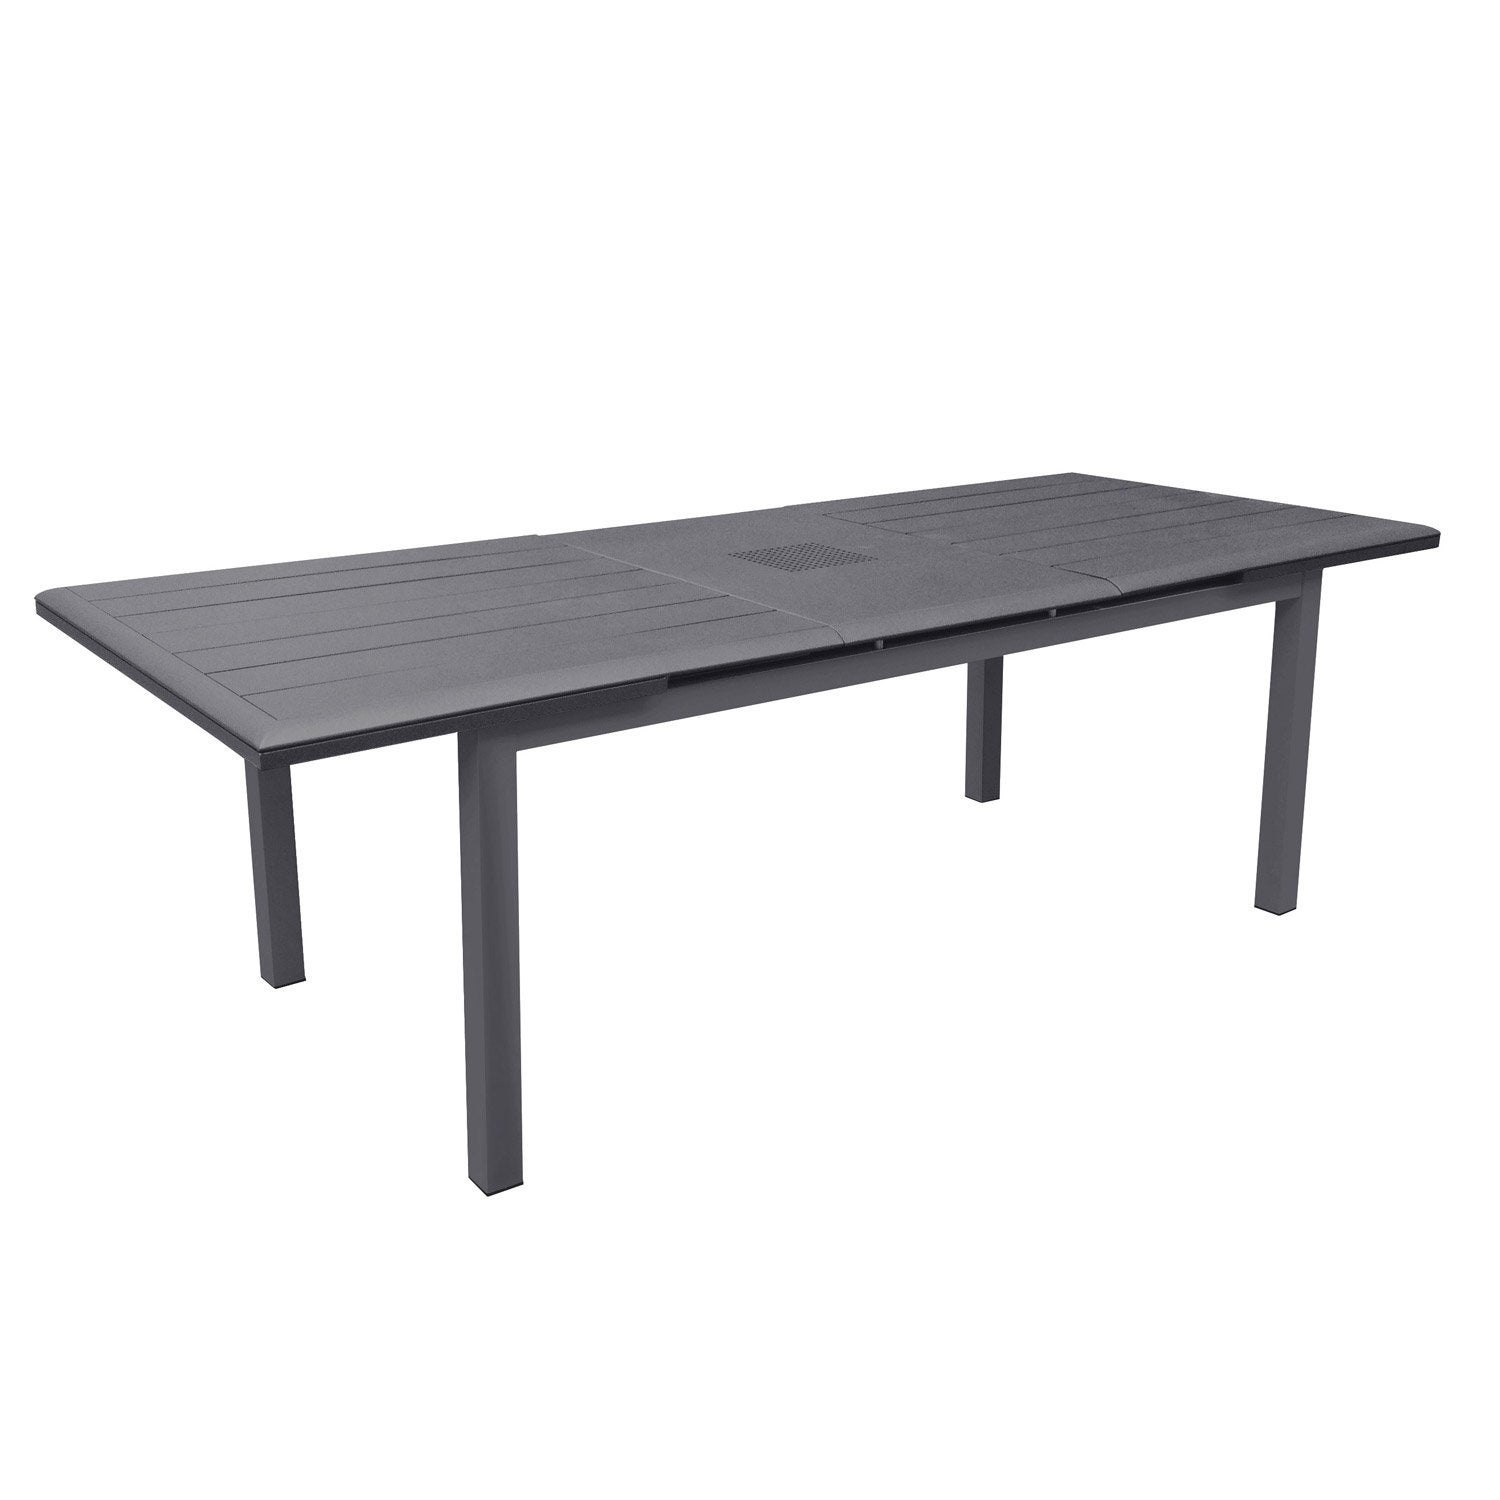 Table de jardin louisiane rectangulaire gris 6 8 personnes leroy merlin - Table de jardin lumineuse ...